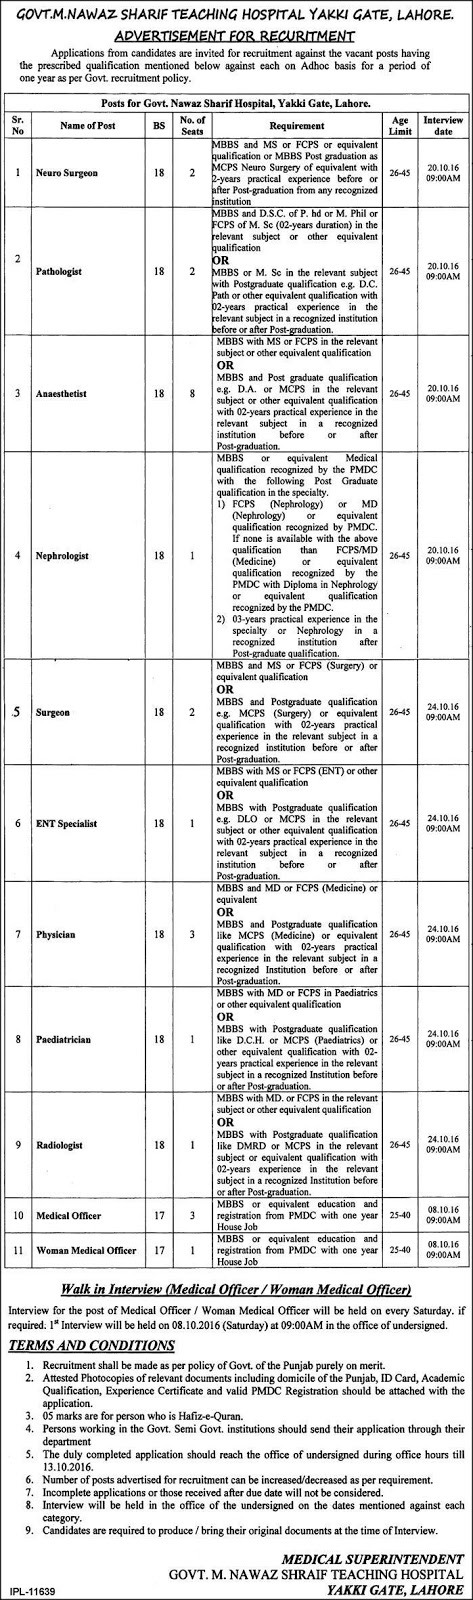 Nawaz Sharif Teaching Hospital Jobs in Lahore